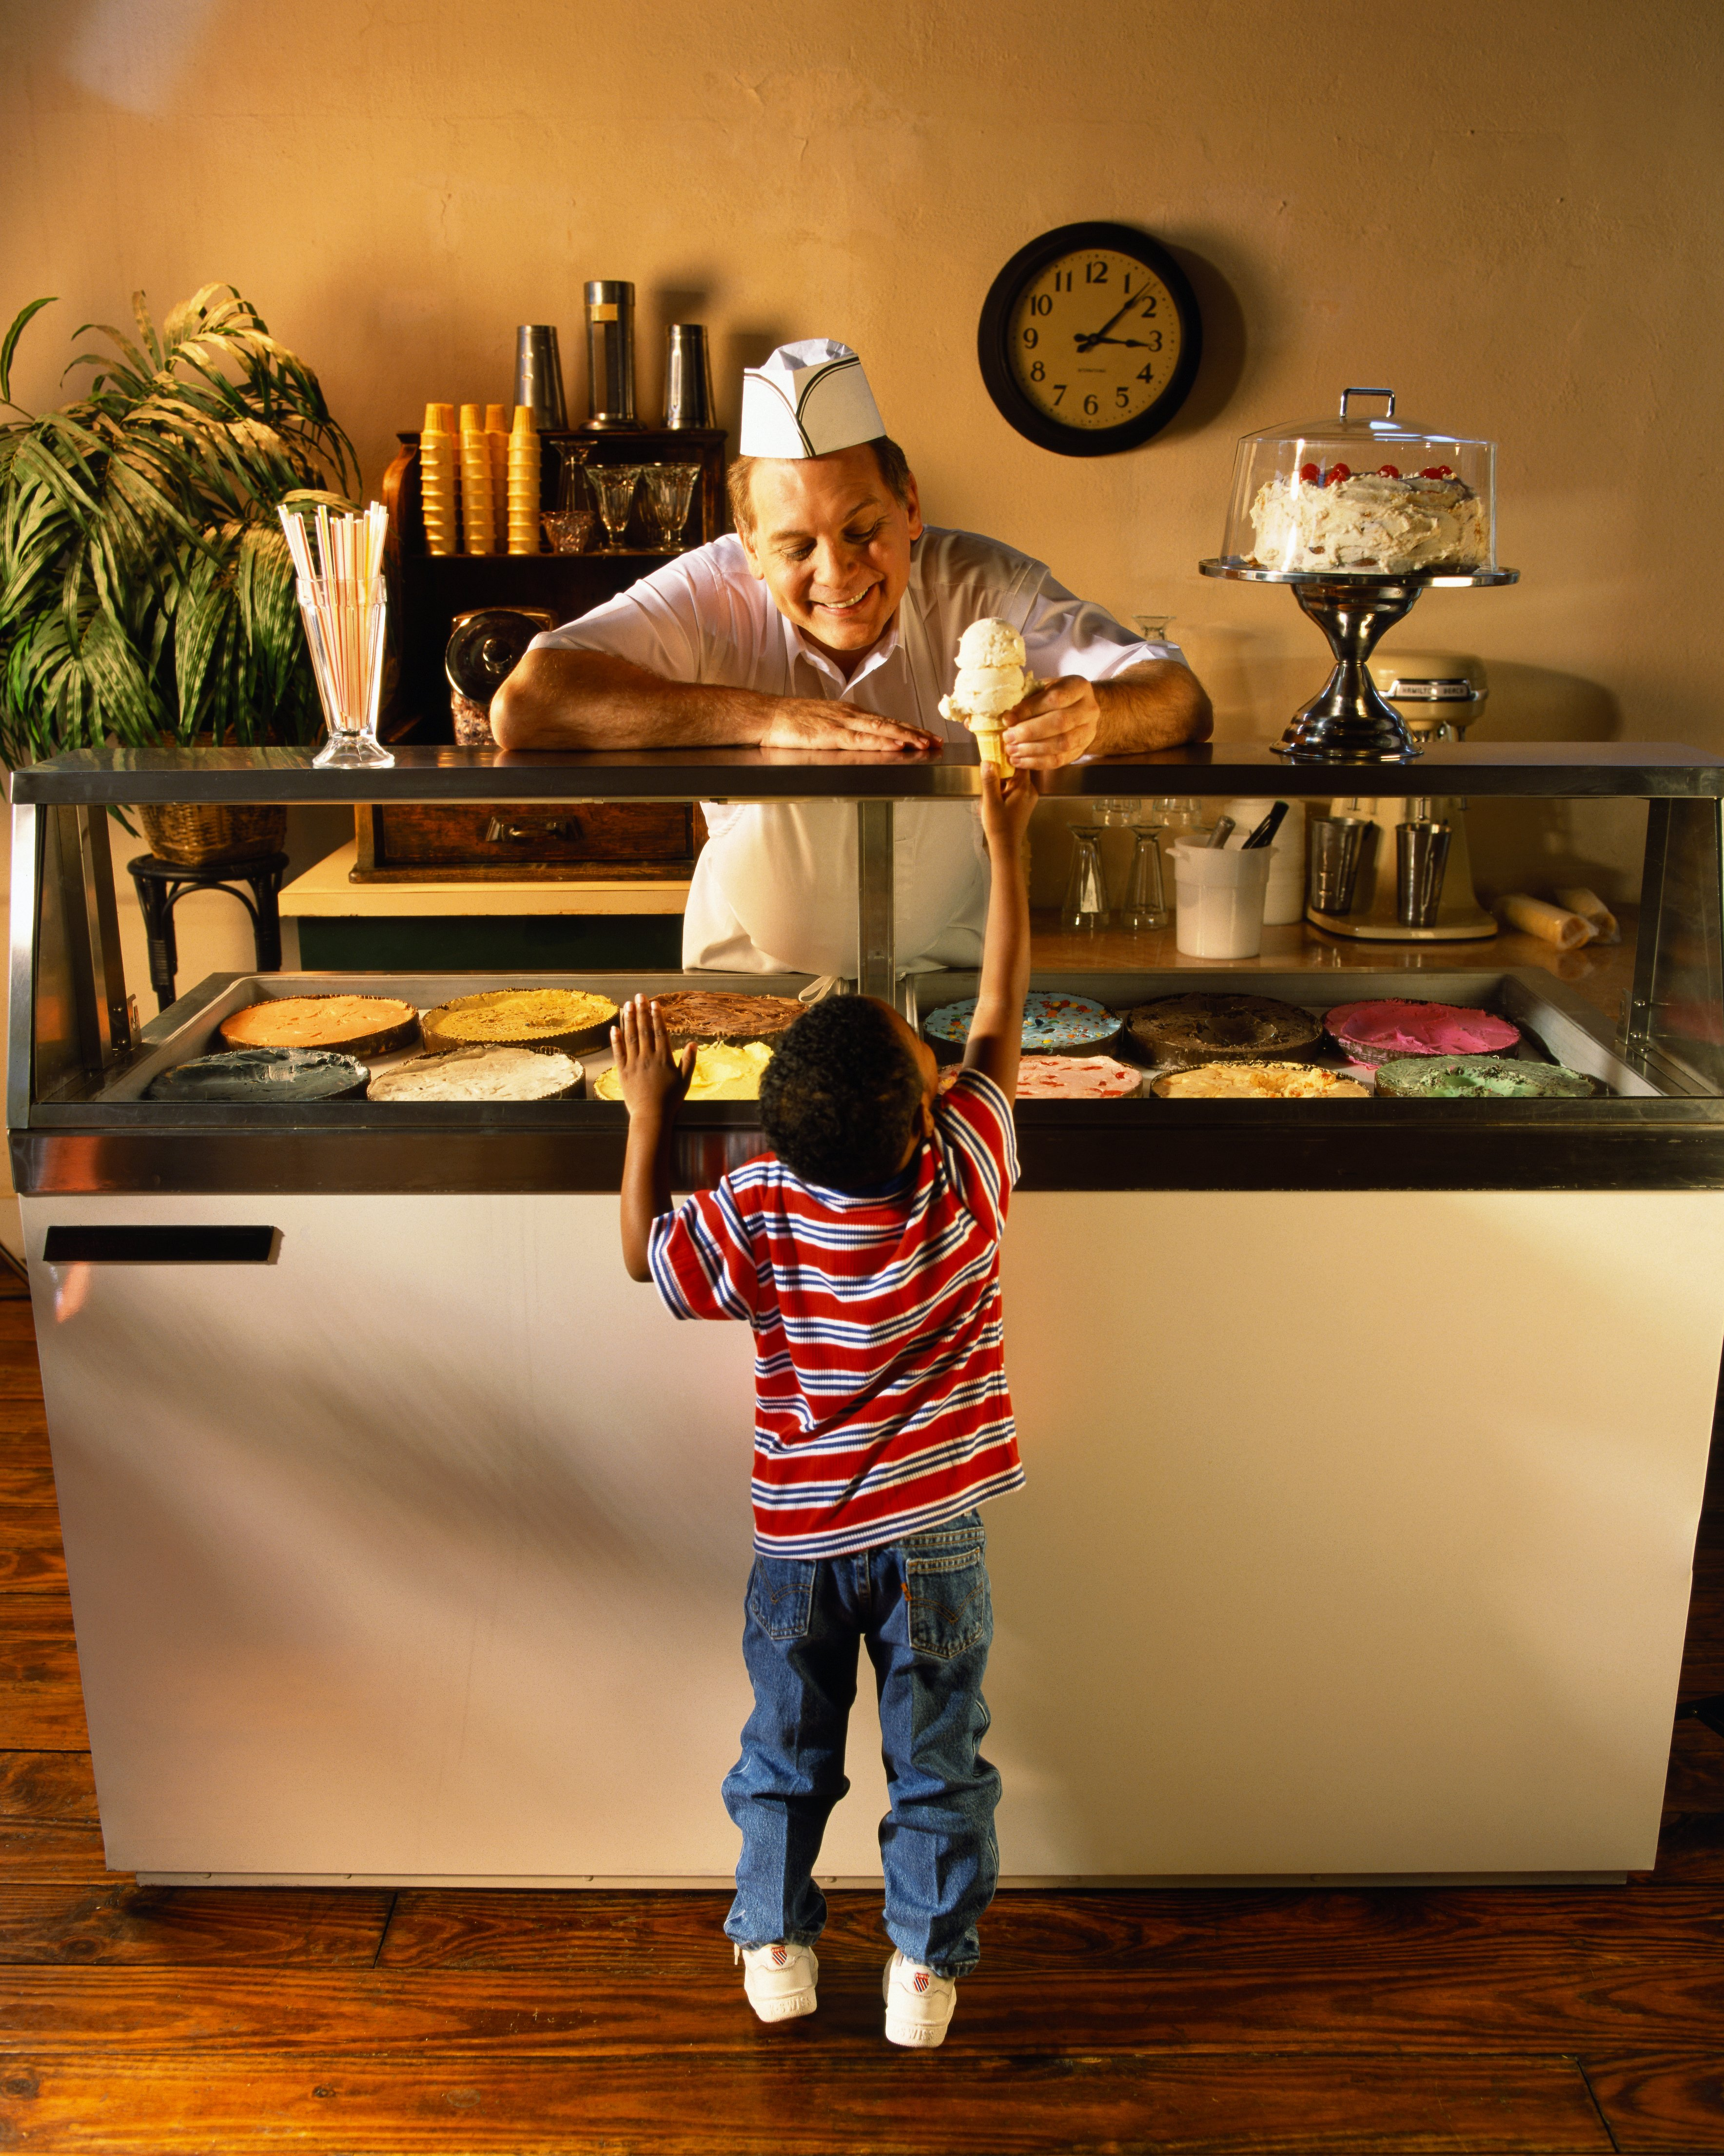 Photo of a child buying ice cream at an ice cream parlor   Photo: Getty Images